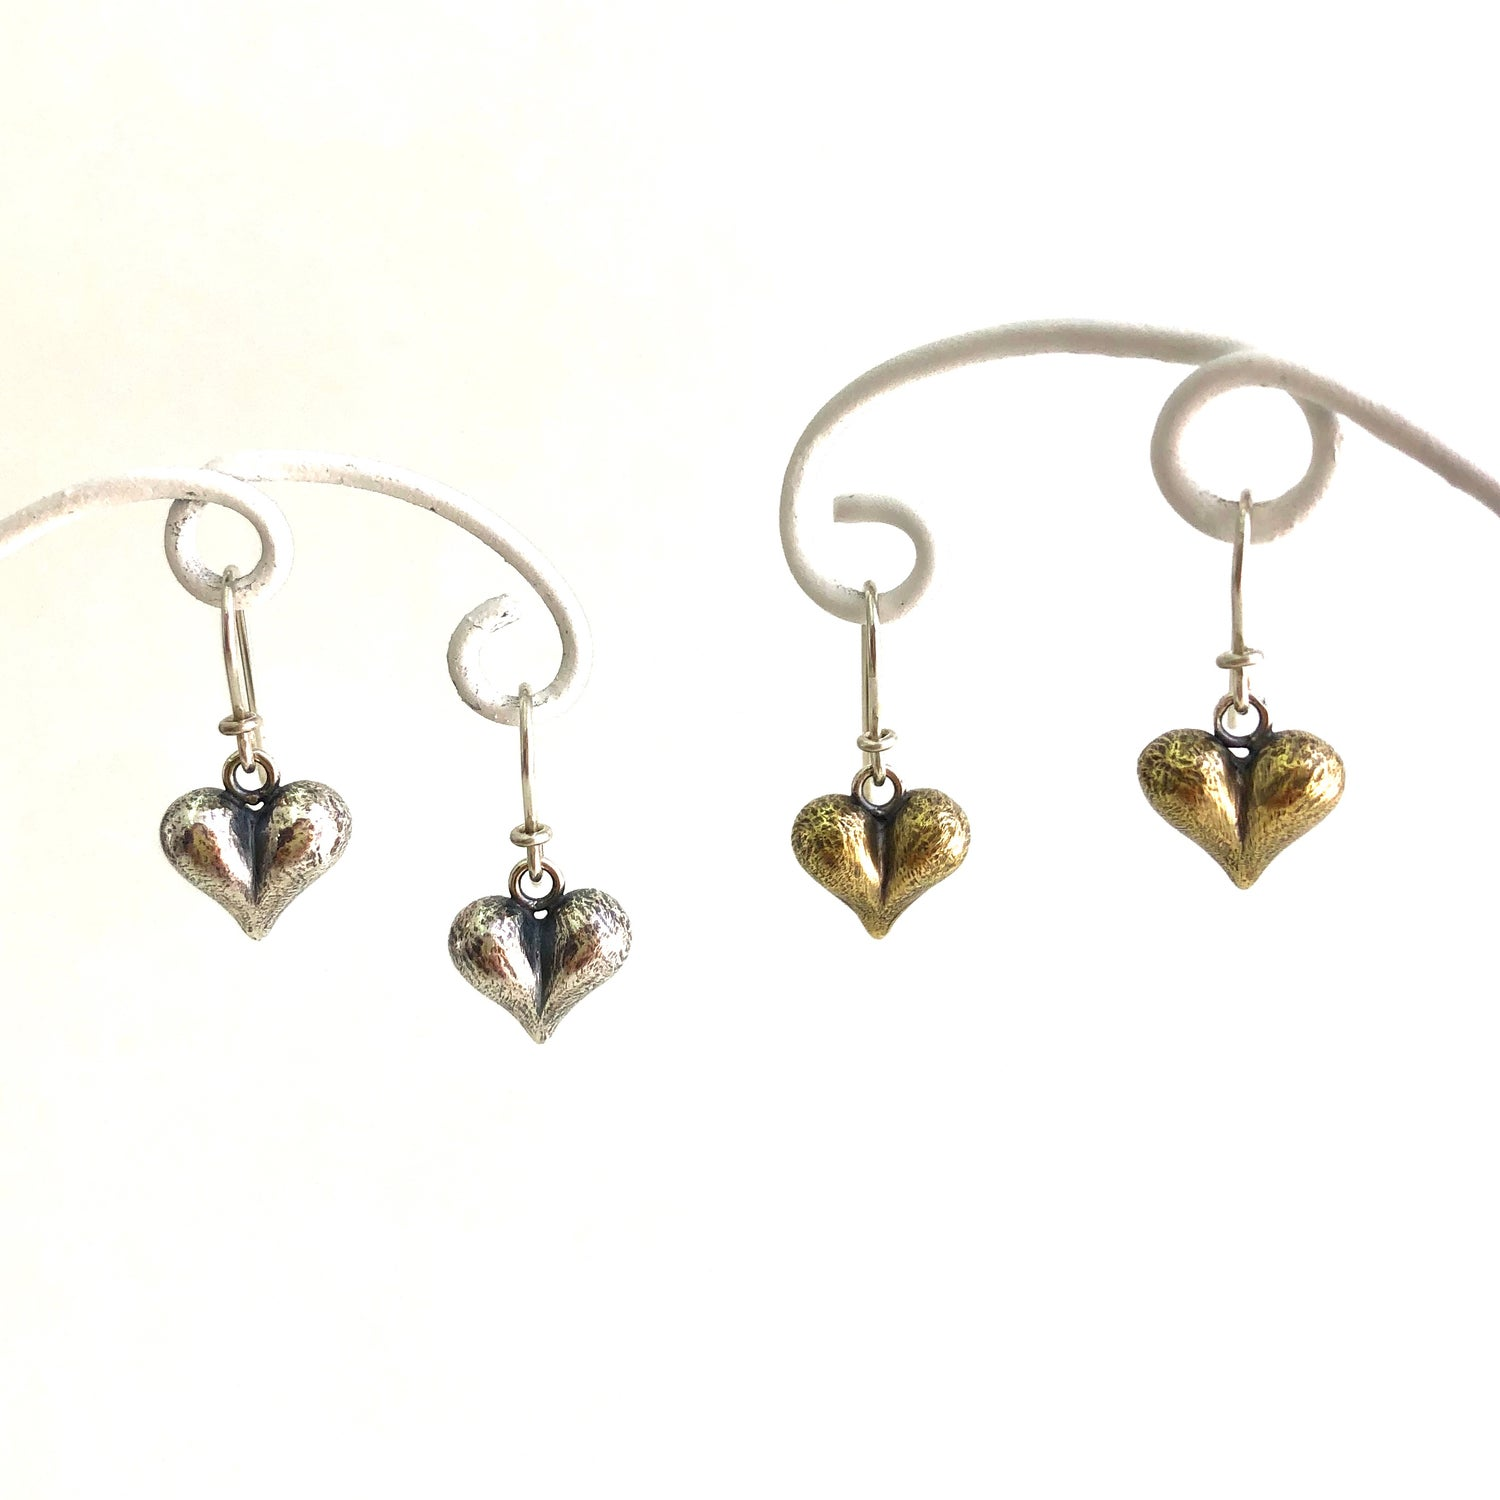 Image of Cheeky heart earrings